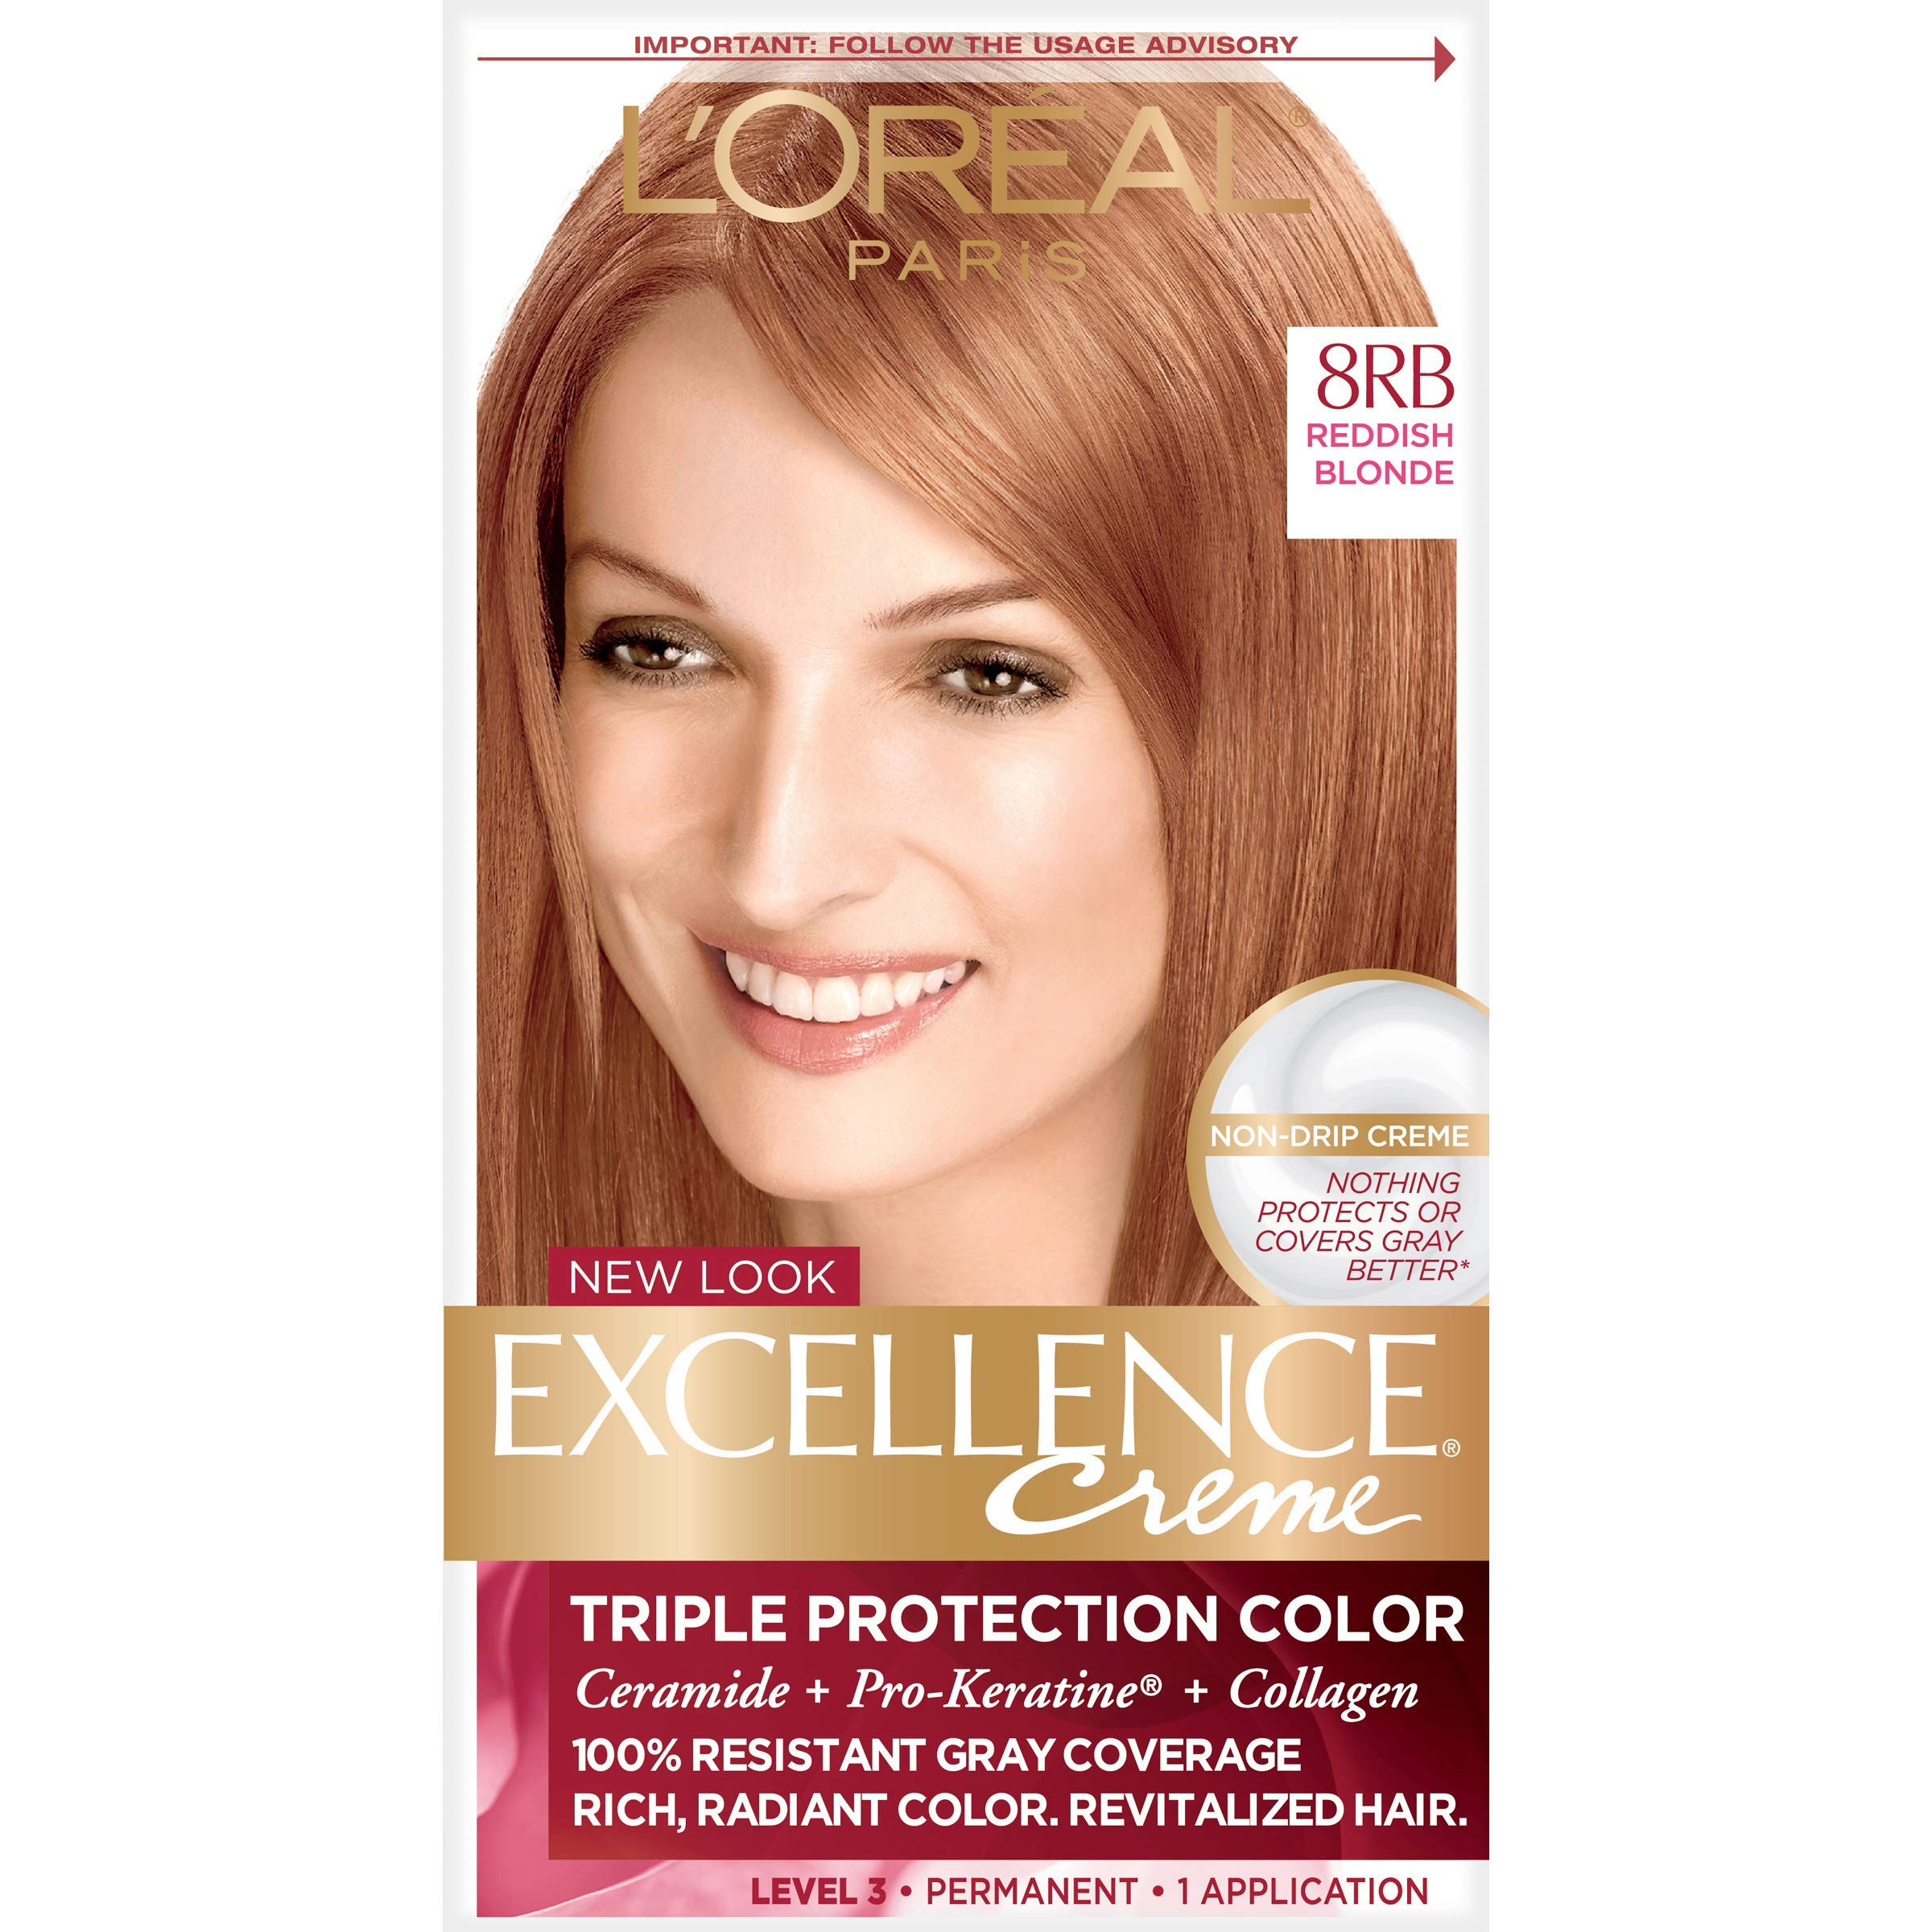 L'Oreal Paris Excellence Creme Permanent Hair Color, 8RB Medium Reddish Blonde, 100 percent Gray Coverage Hair Dye, Pack of 1